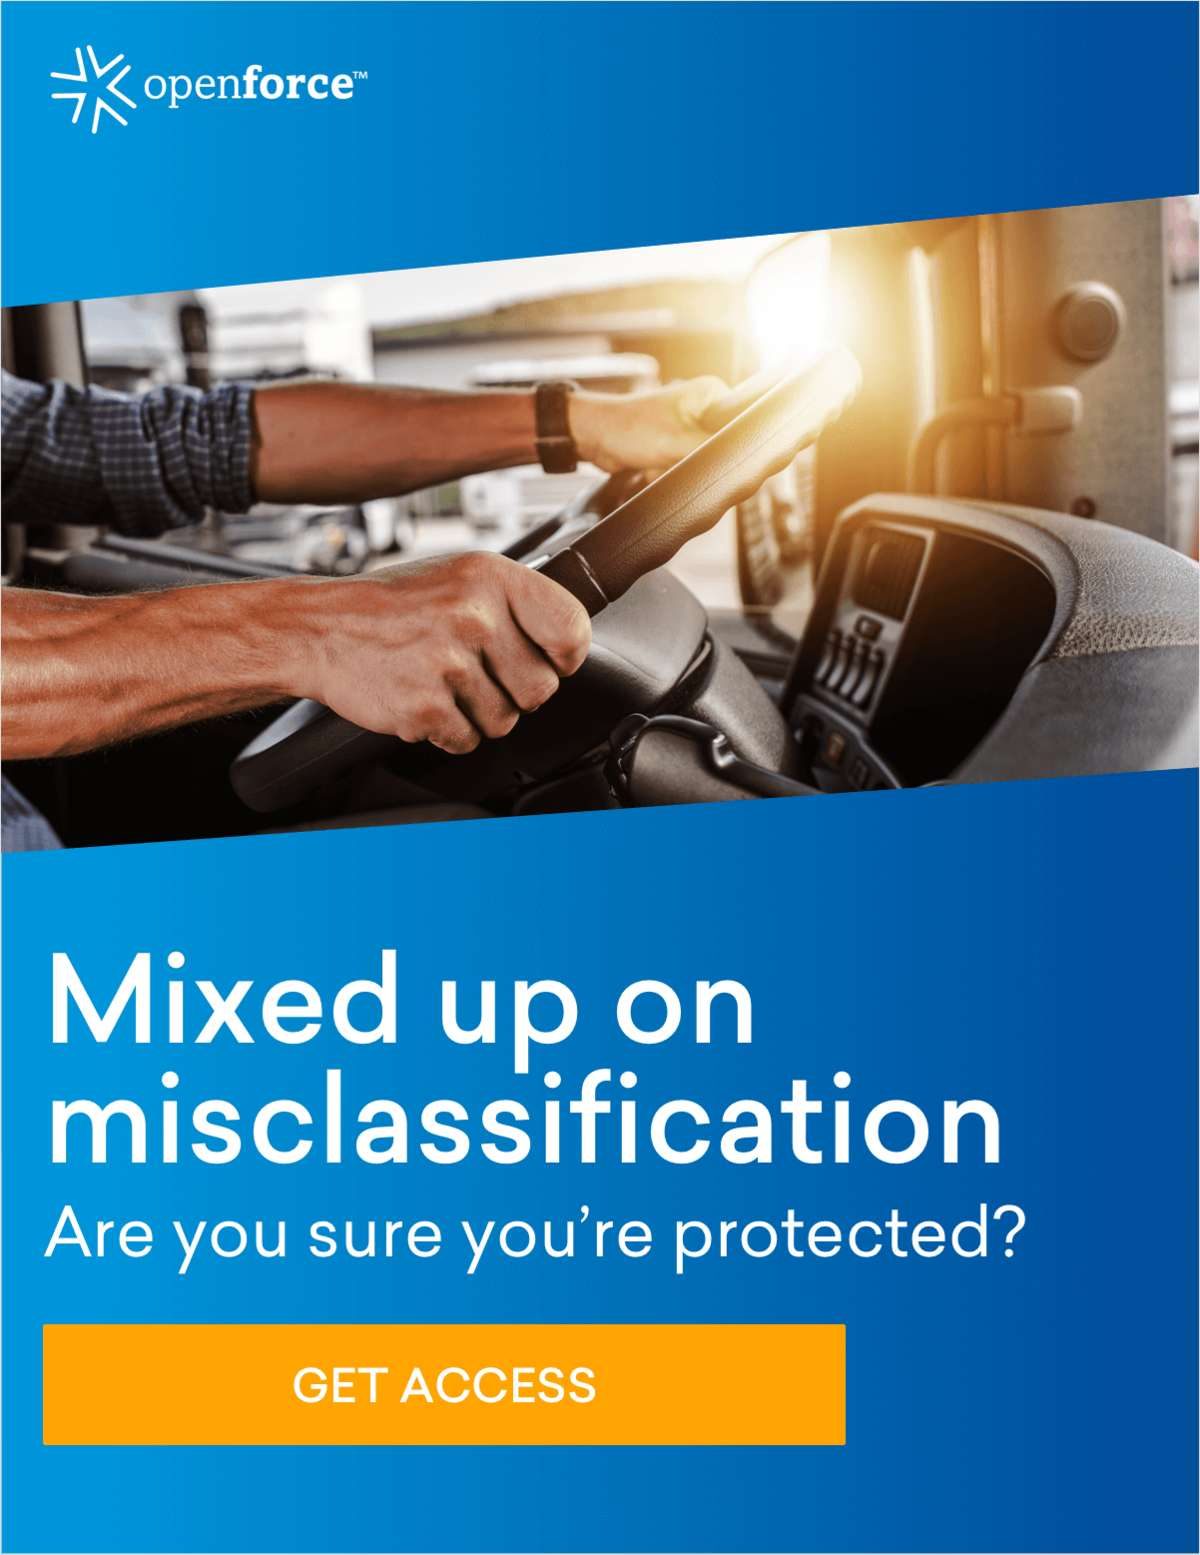 Mixed Up On Misclassification: Are you sure you're protected?